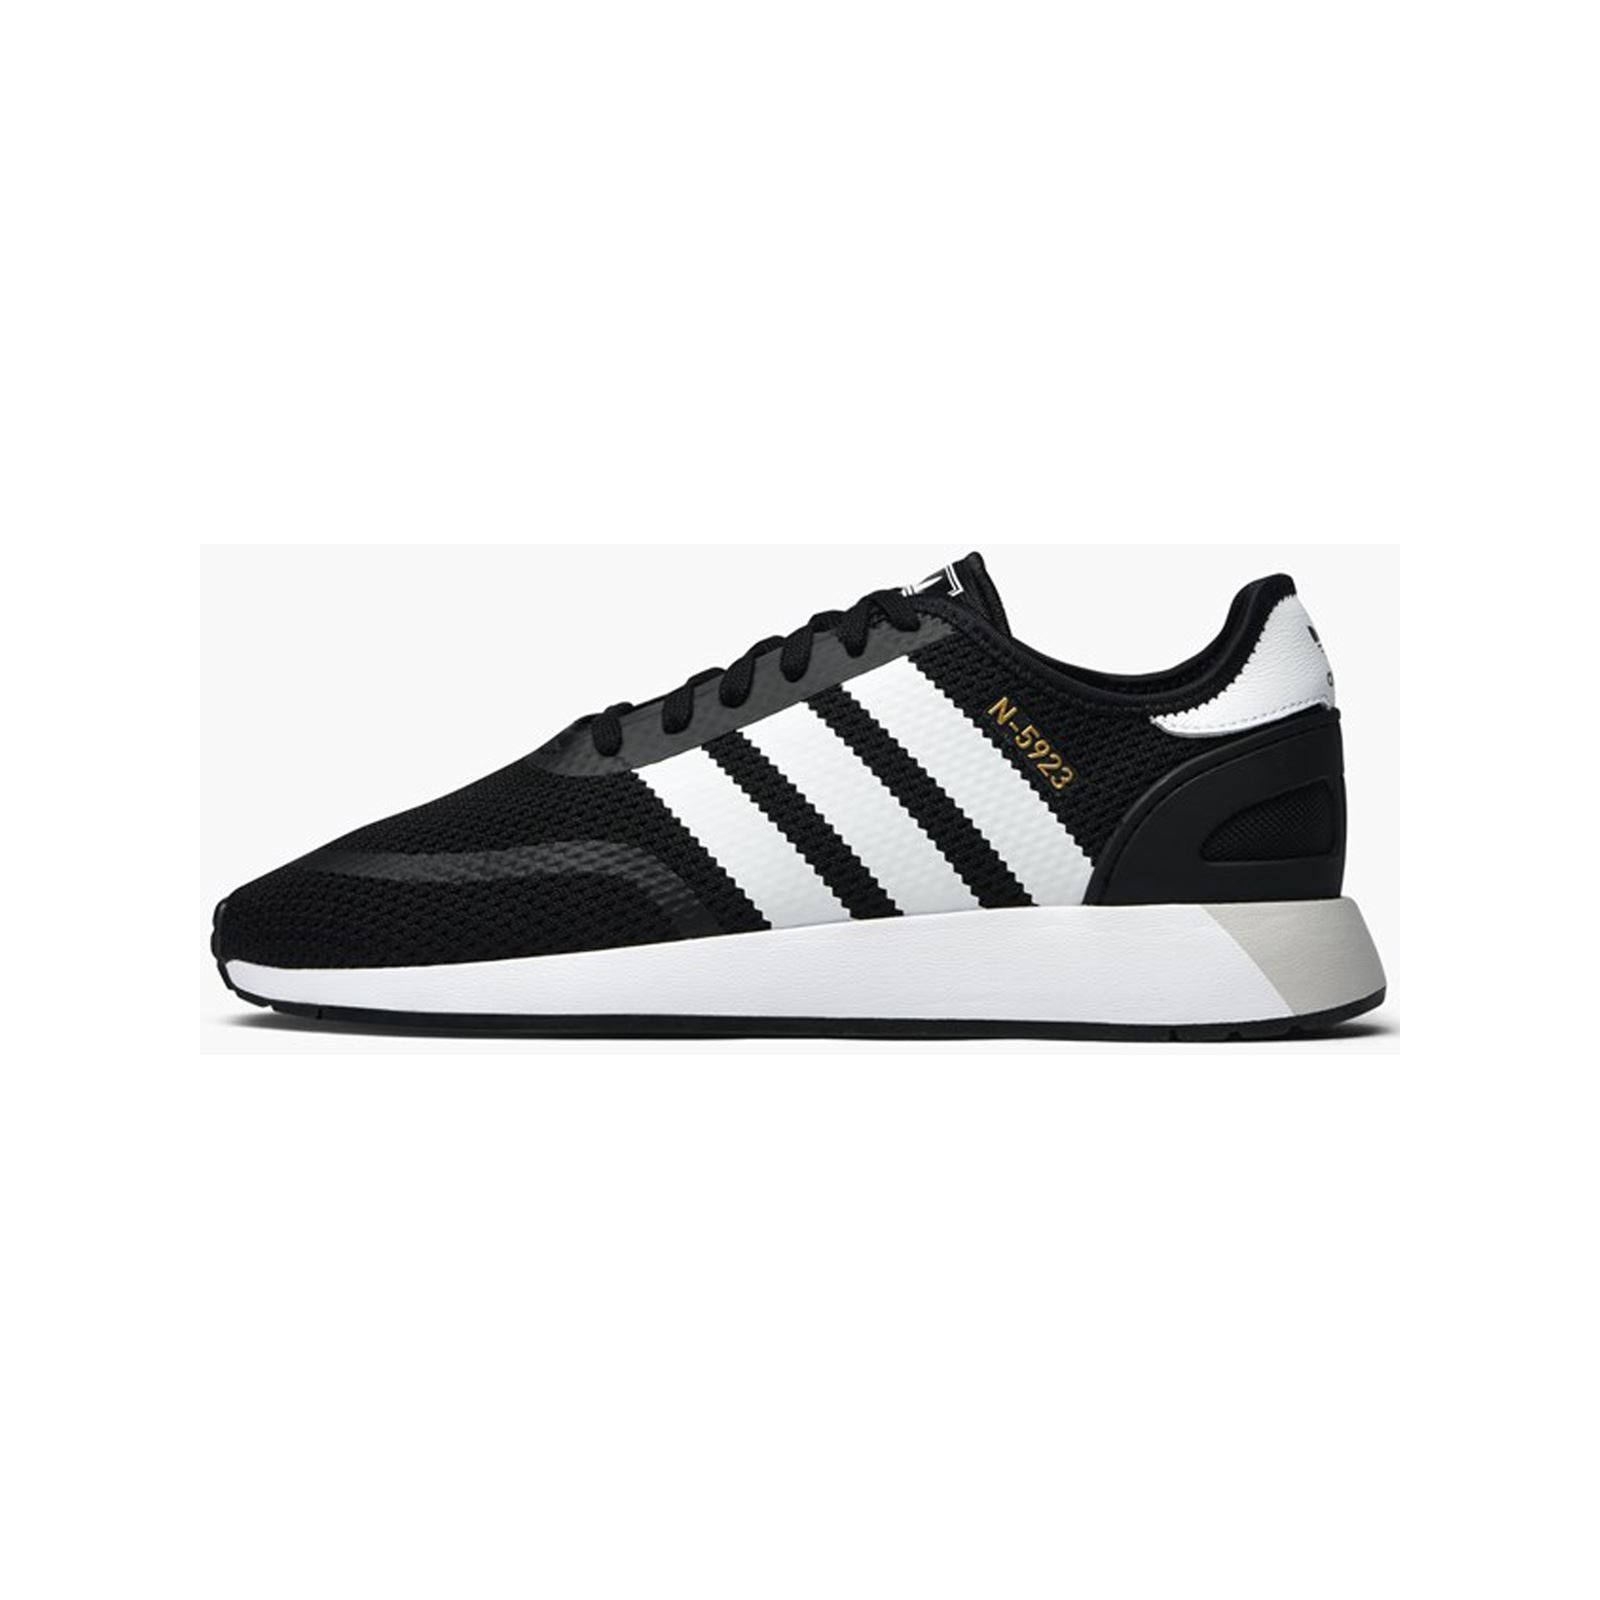 N Noir Baskets 5923 Originals Adidas Basses 5xqw46n8Aa